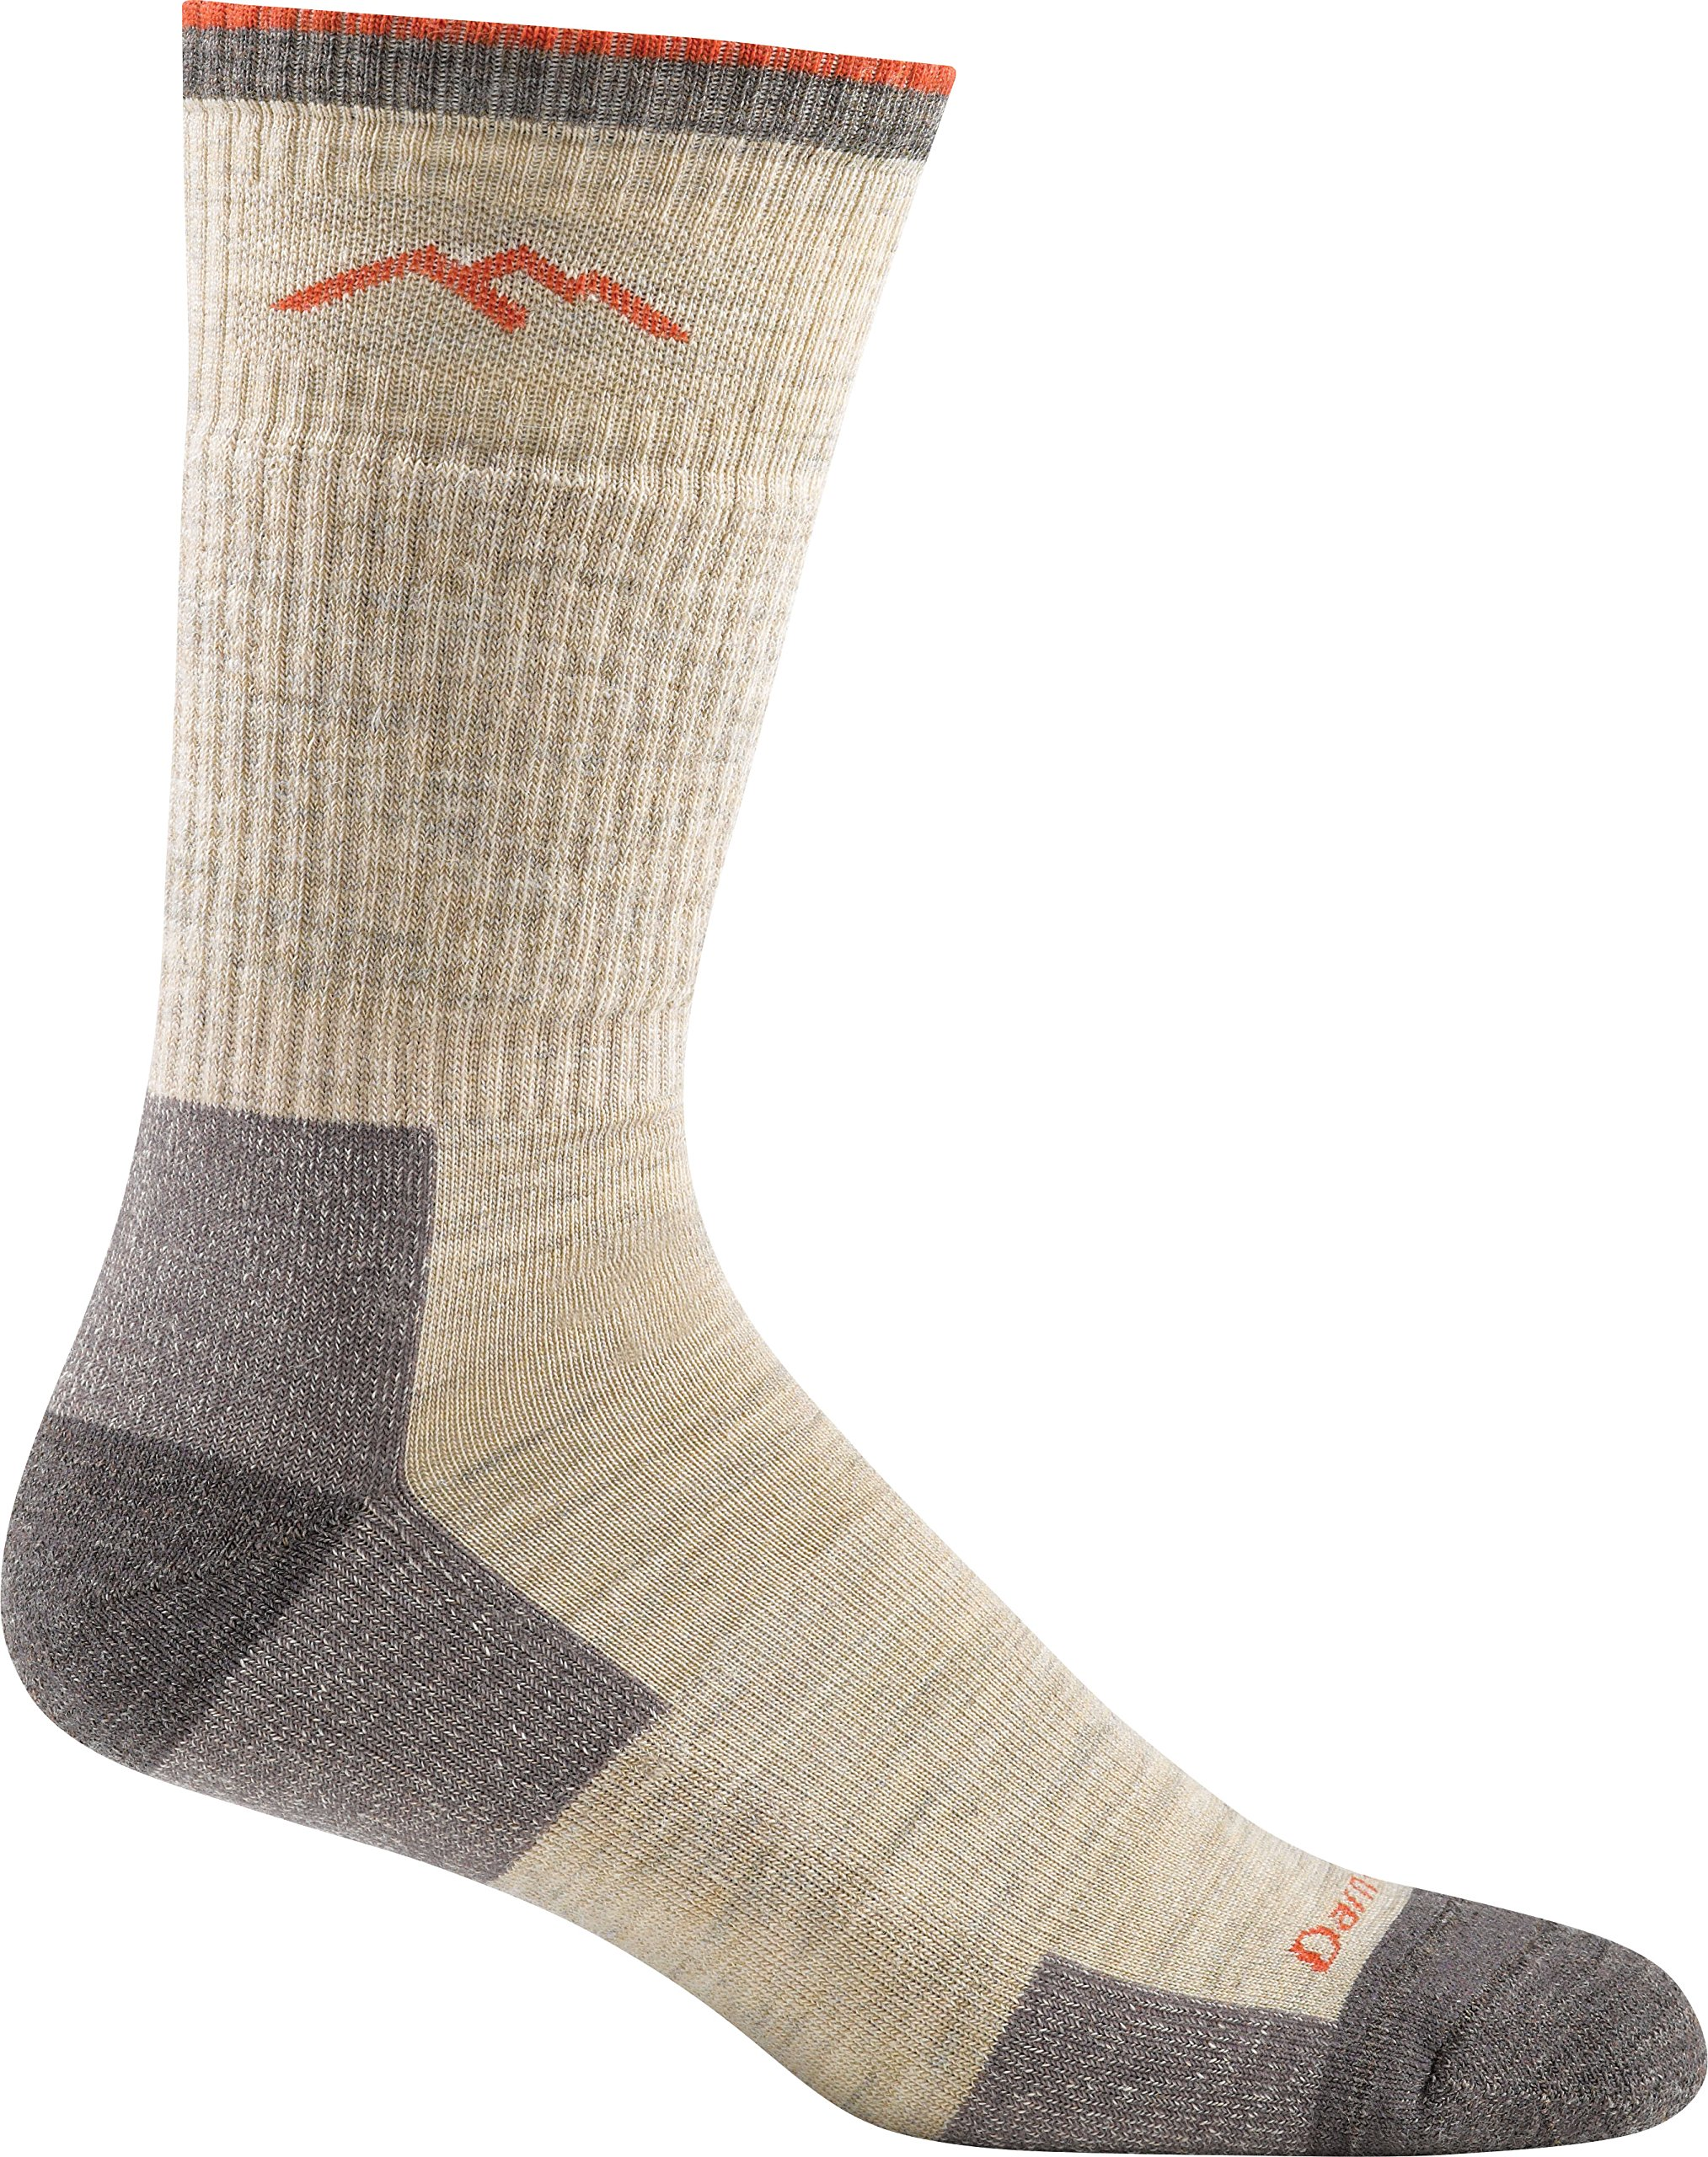 Darn Tough Men's Wool Boot Cushion Sock (Style 1403) - 6 Pack Special Offer (Oatmeal, Medium) by Darn Tough